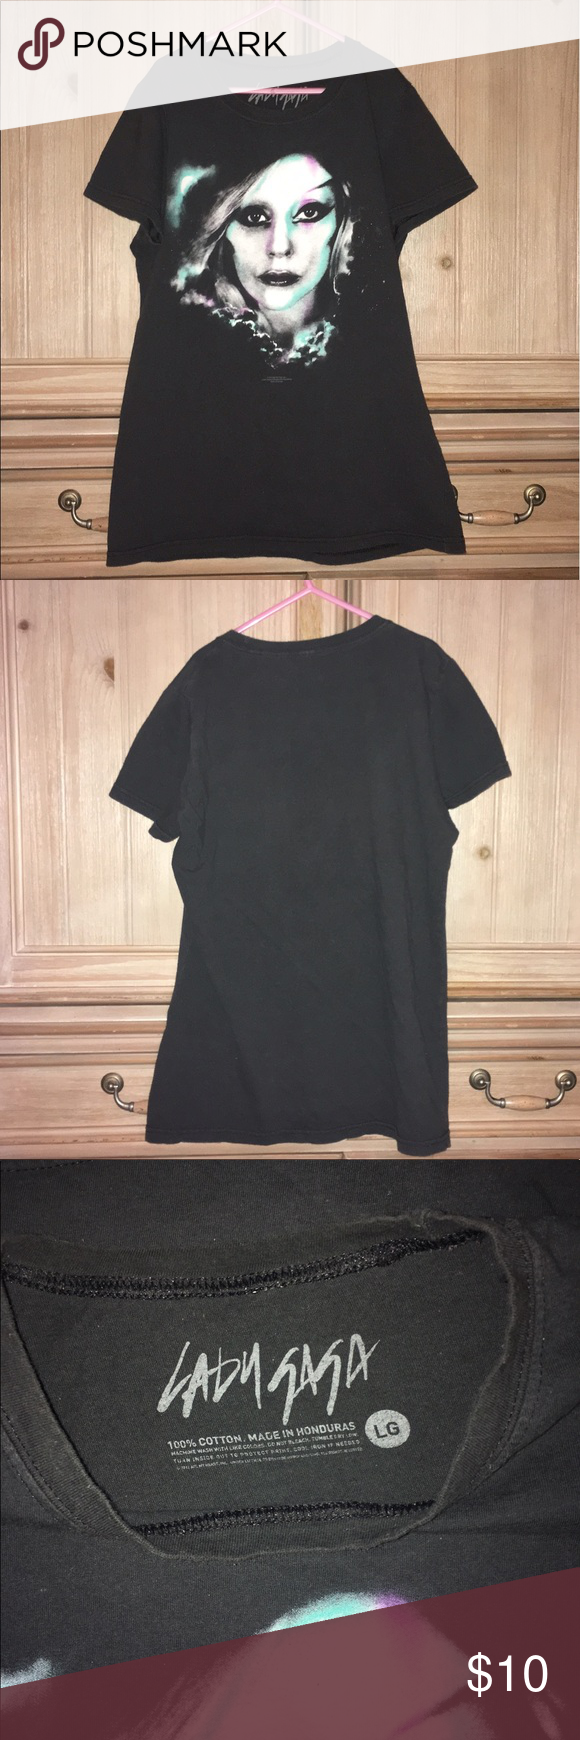 Lady Gaga Girls T Sz L Lady Gaga Girls T Sz L - see pics for measurements - 100% cotton- good used condition- no holes, tears or stains- comment with any questions- open to offers- thanks for looking! Lady Gaga Shirts & Tops Tees - Short Sleeve